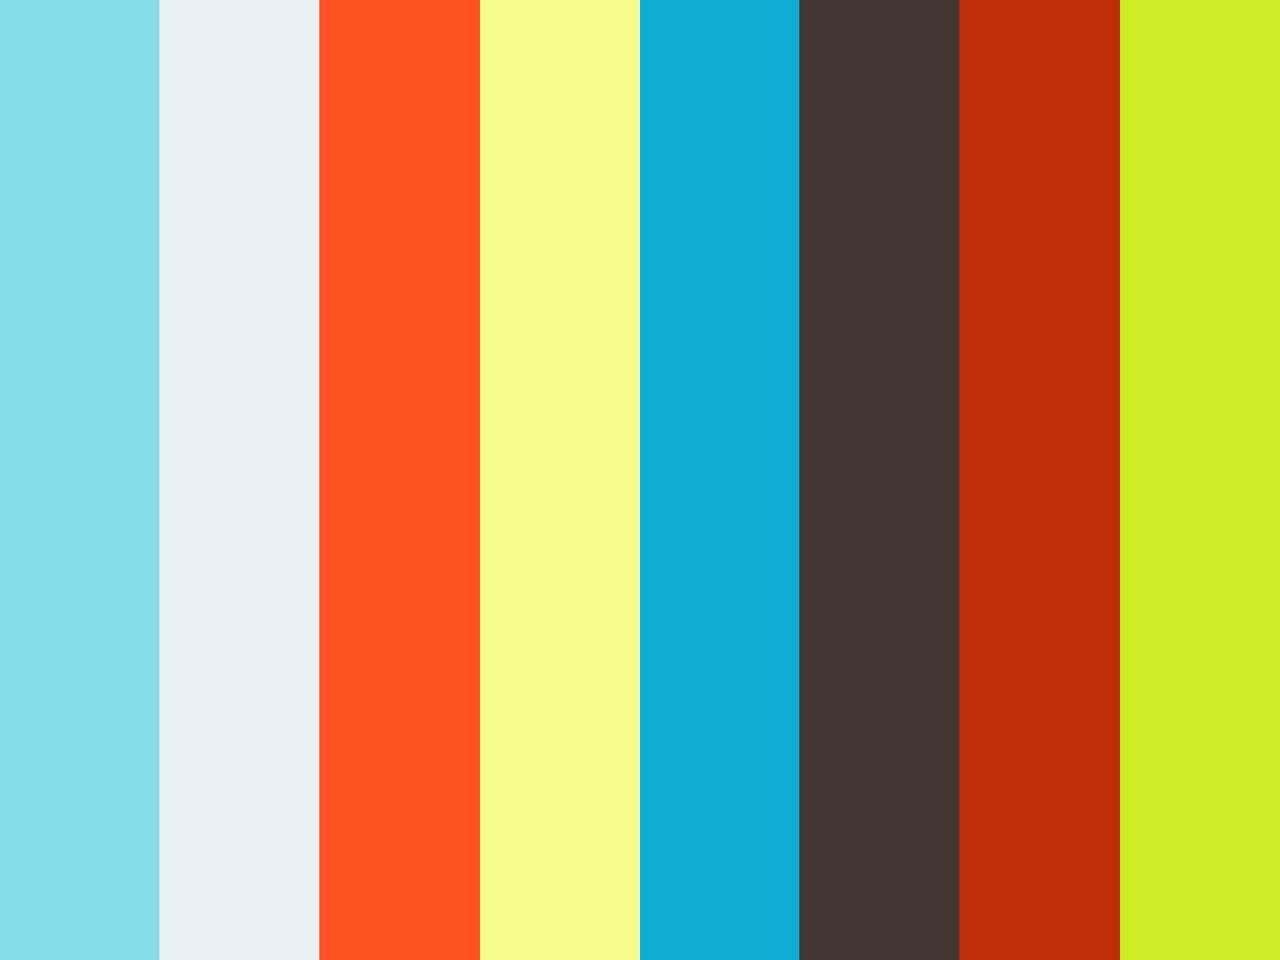 great depression research paper thesis statement on the causes of  and effects of the great depression essay causes and effects of the great depression essay